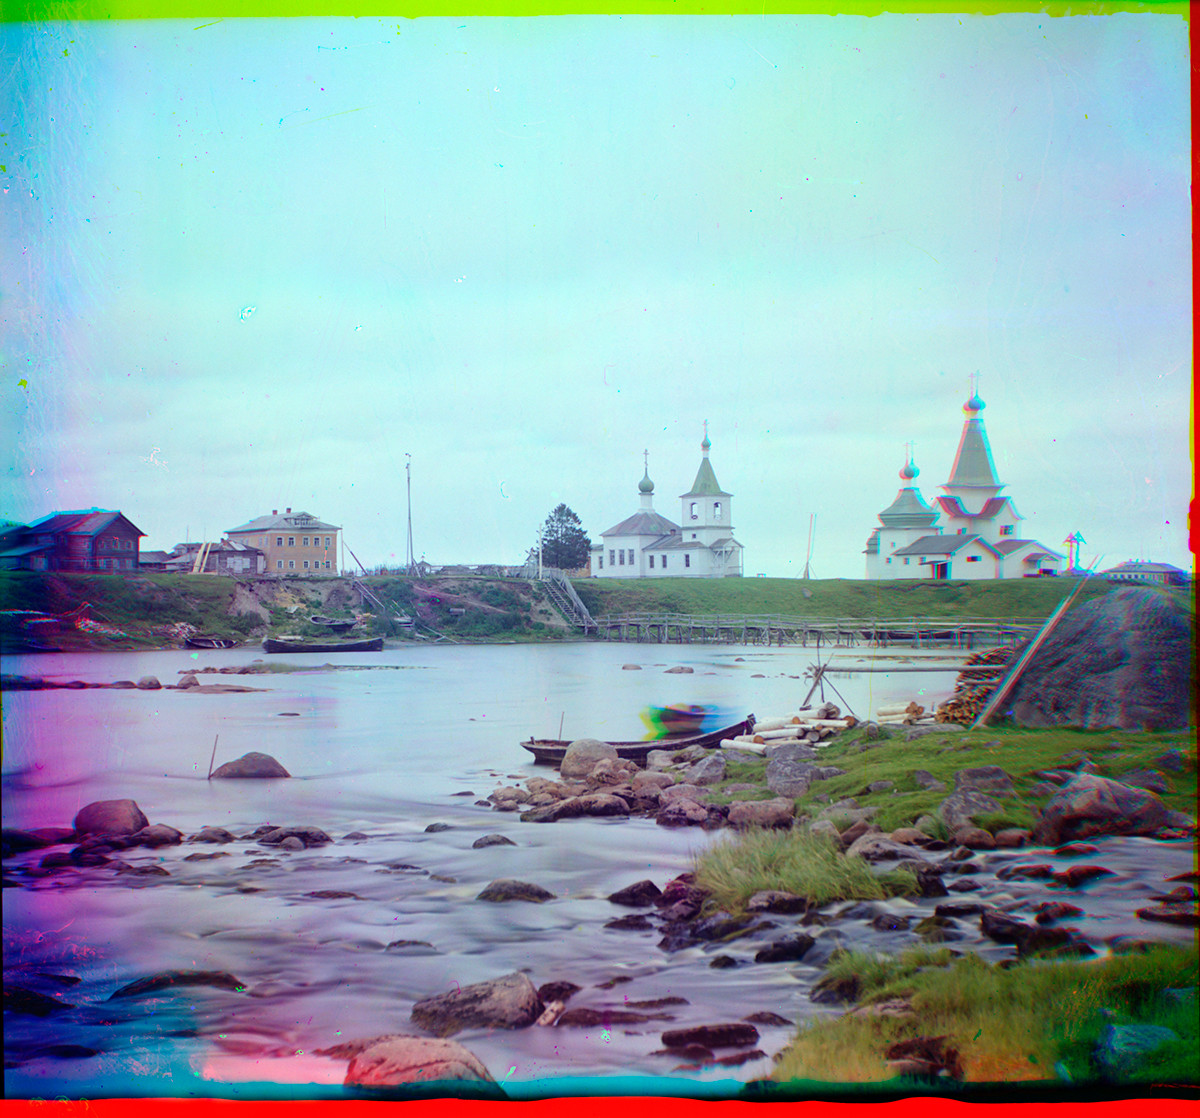 Shuyeretskoye. View across Shuya River with wooden Church of St. Clement (center), Church of St. Paraskeva & St. Nicholas Church. Smudge in the skiff is a person moving during the three exposures of the color process. Summer 1916